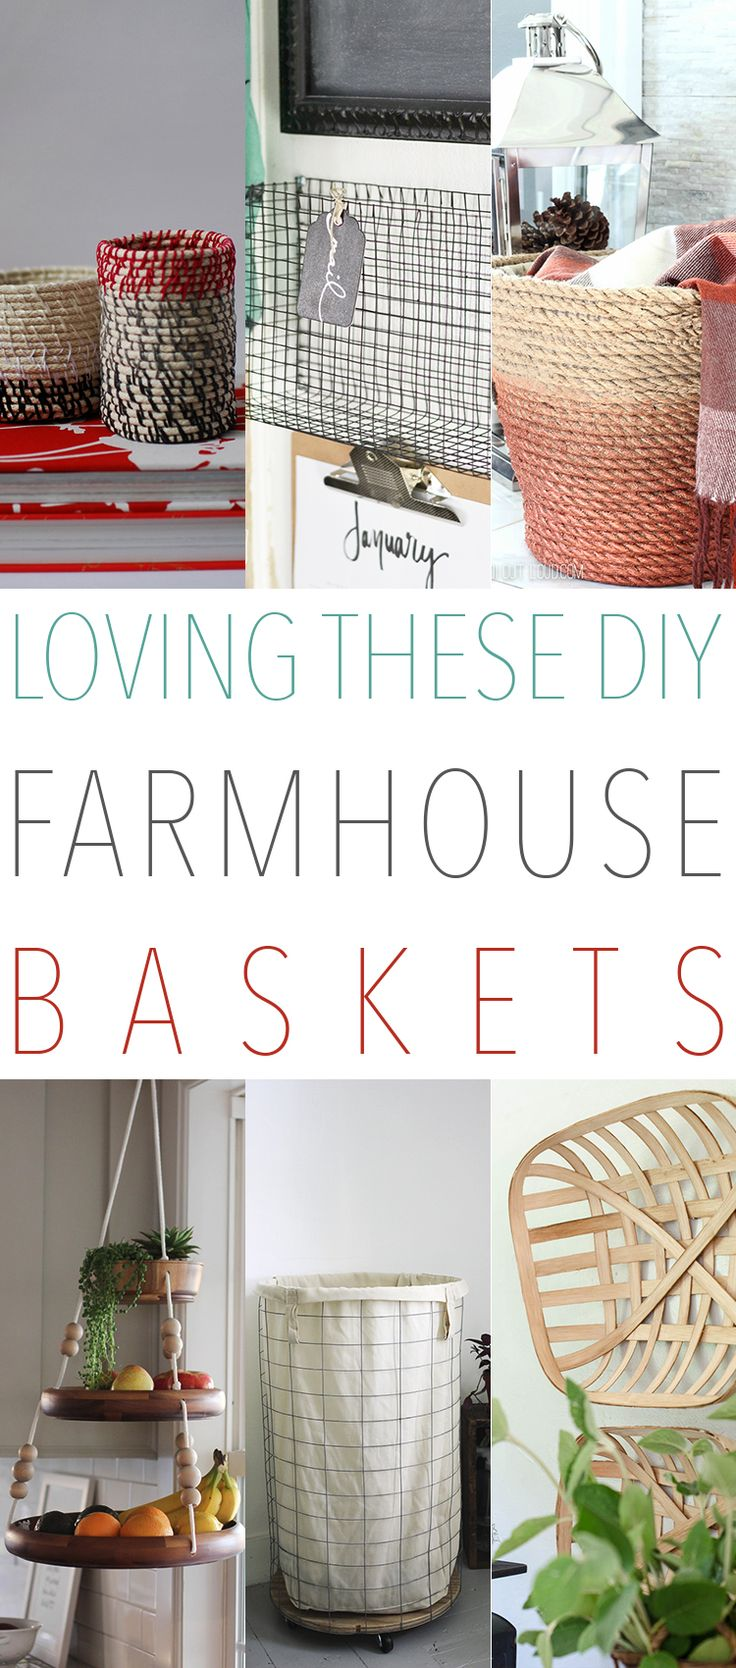 best 25+ farmhouse baskets ideas on pinterest | farmhouse bar